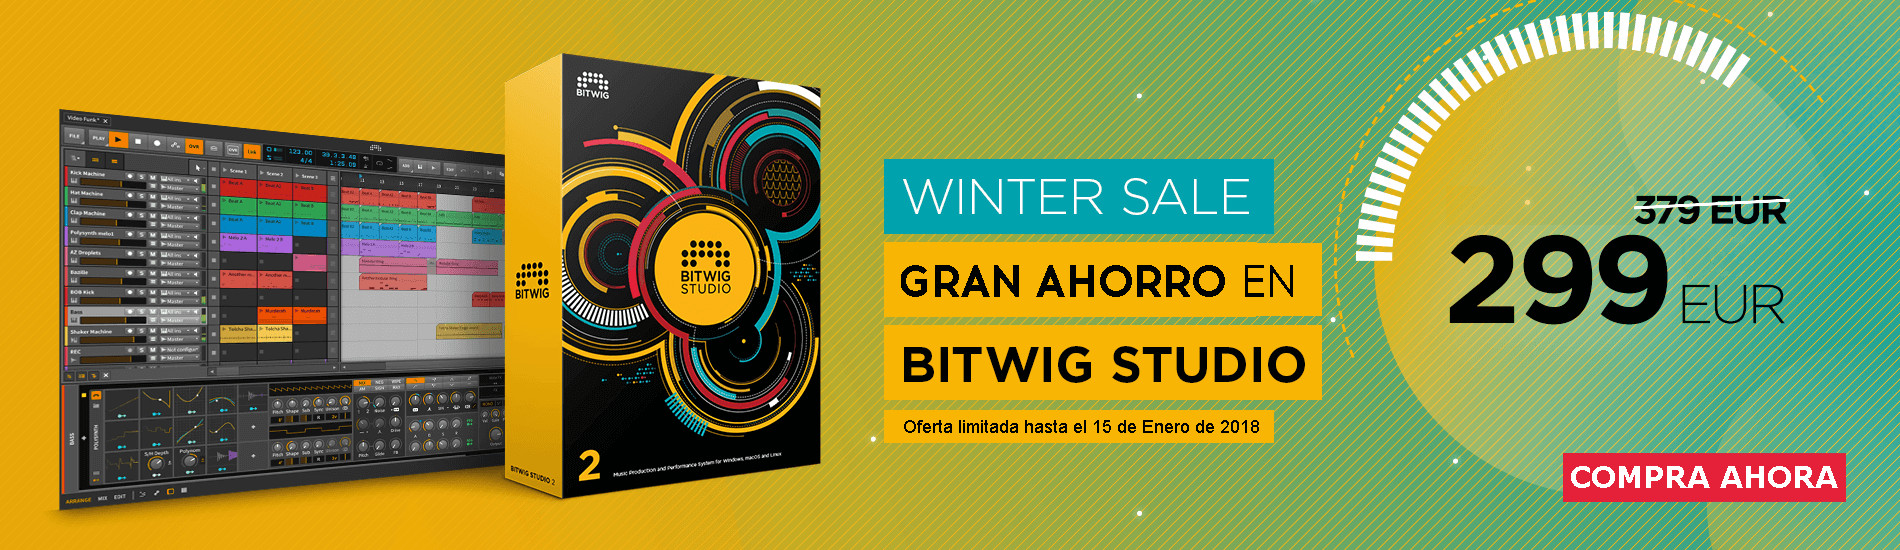 bitwig_winter_sale_banner_1900x550.jpg